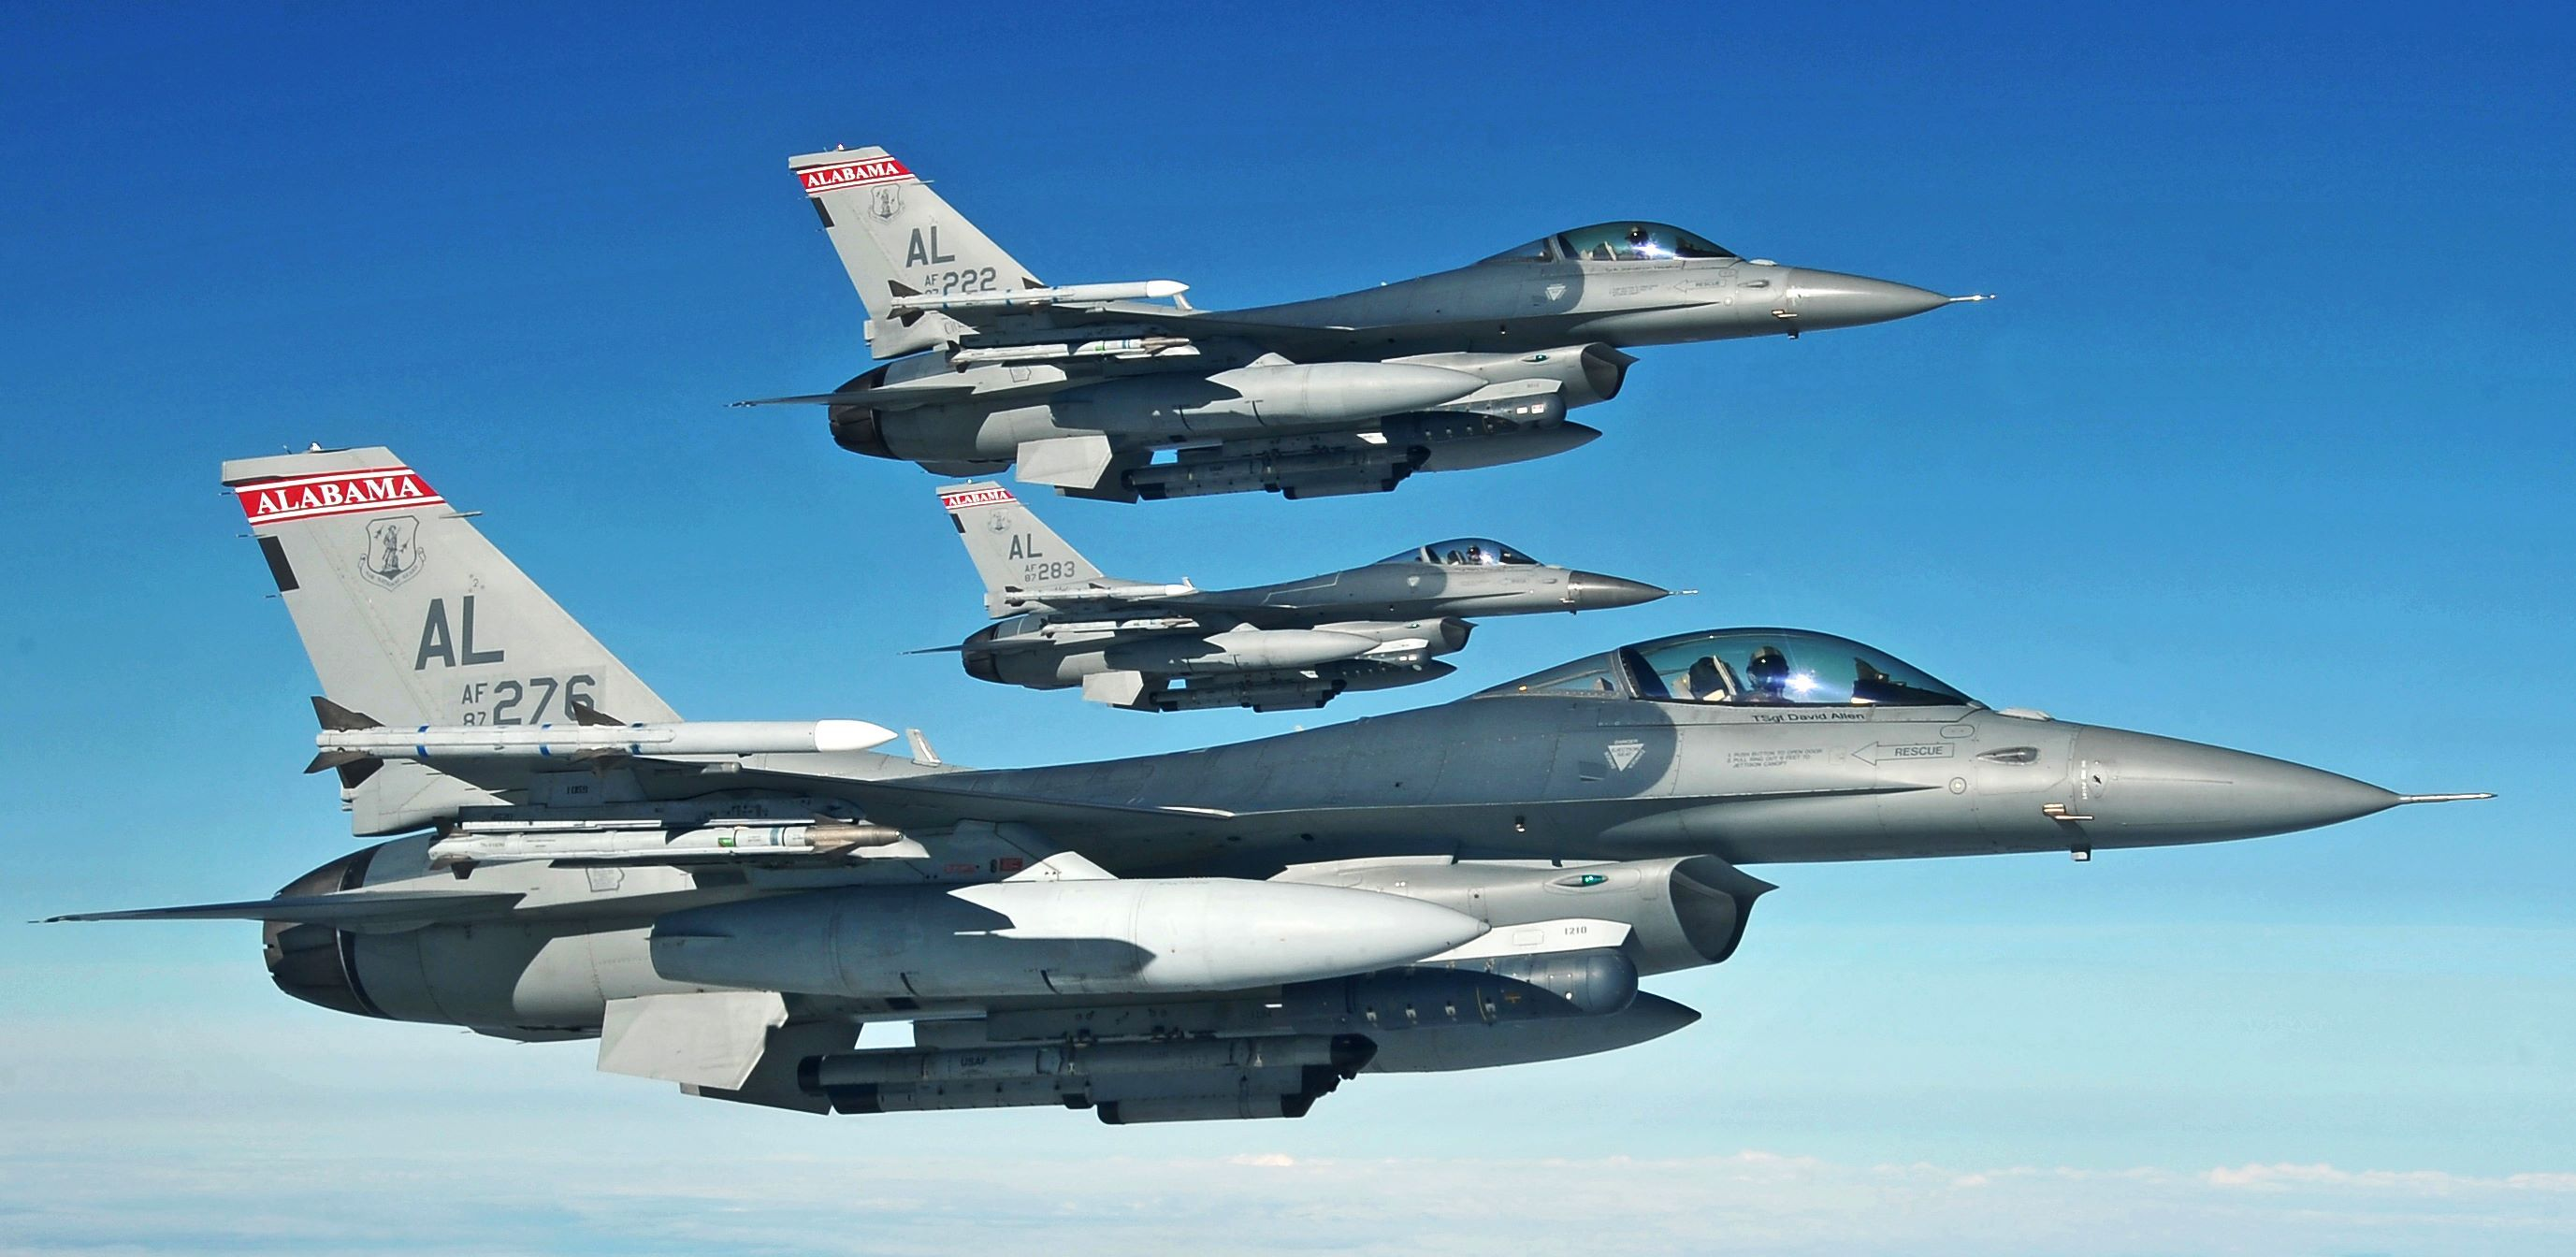 187th Fighter Wing - Alabama Air National Guard | Warbirds